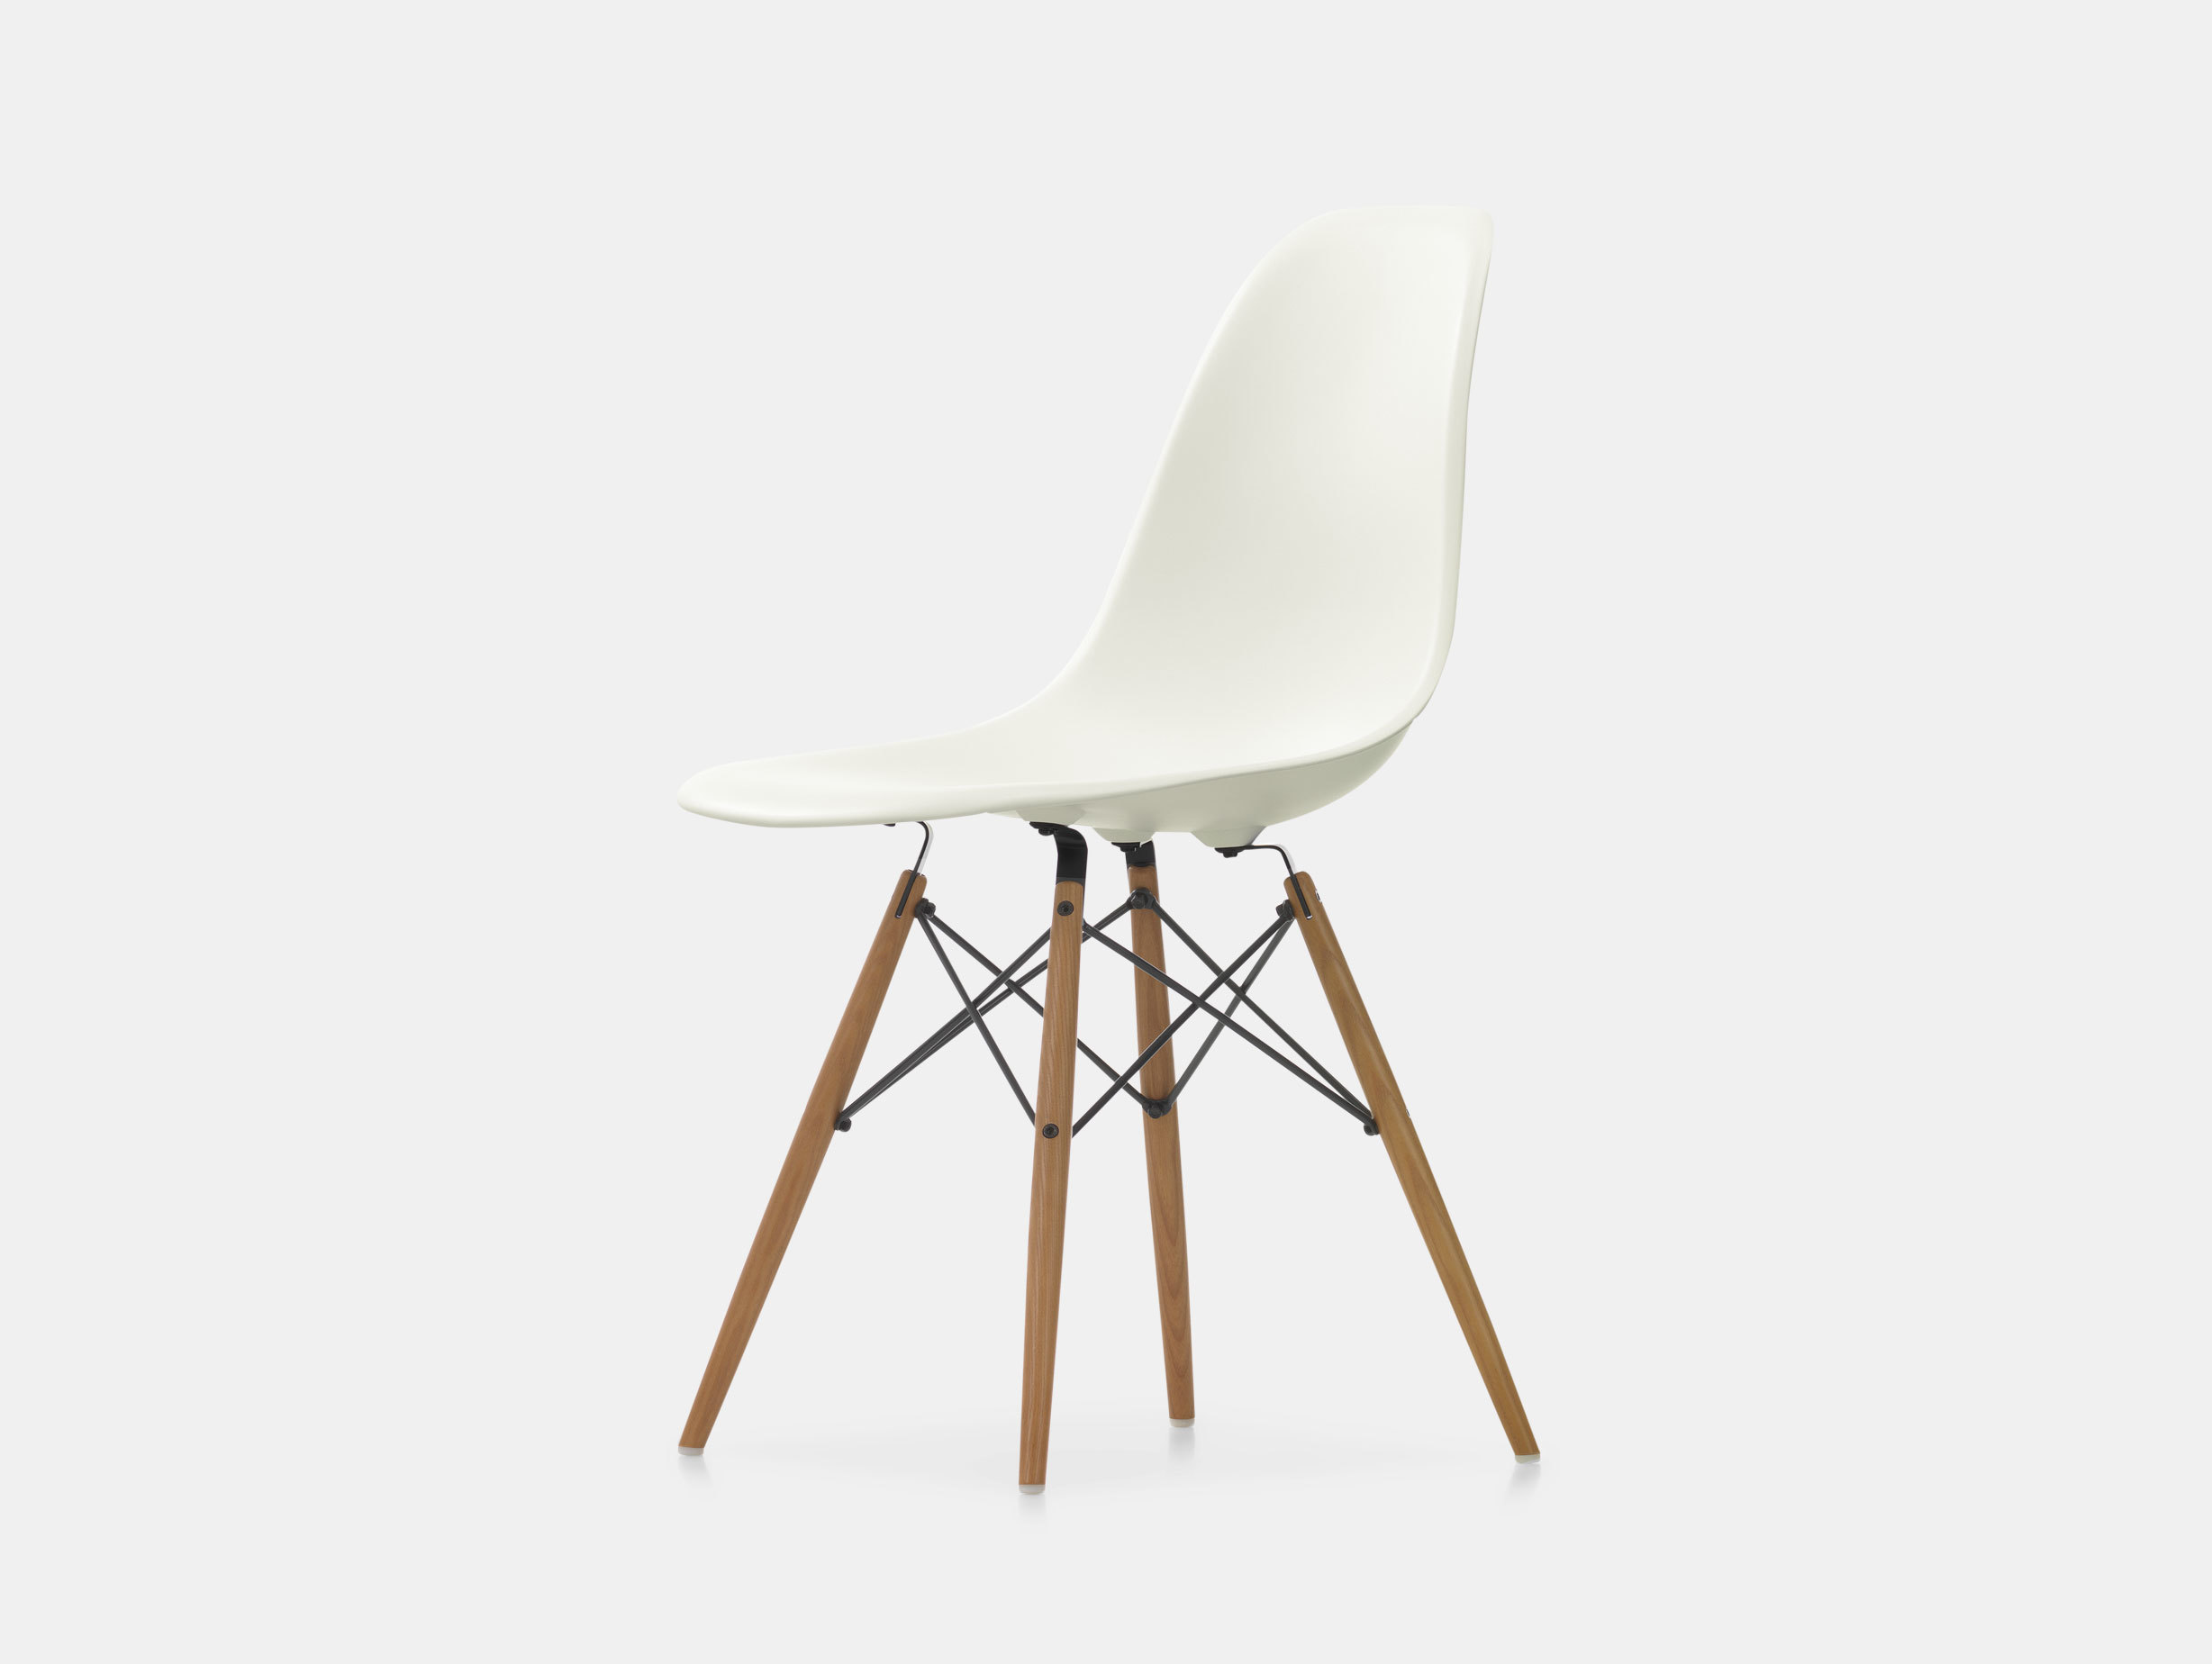 Eames DSW Plastic Side Chair image 4